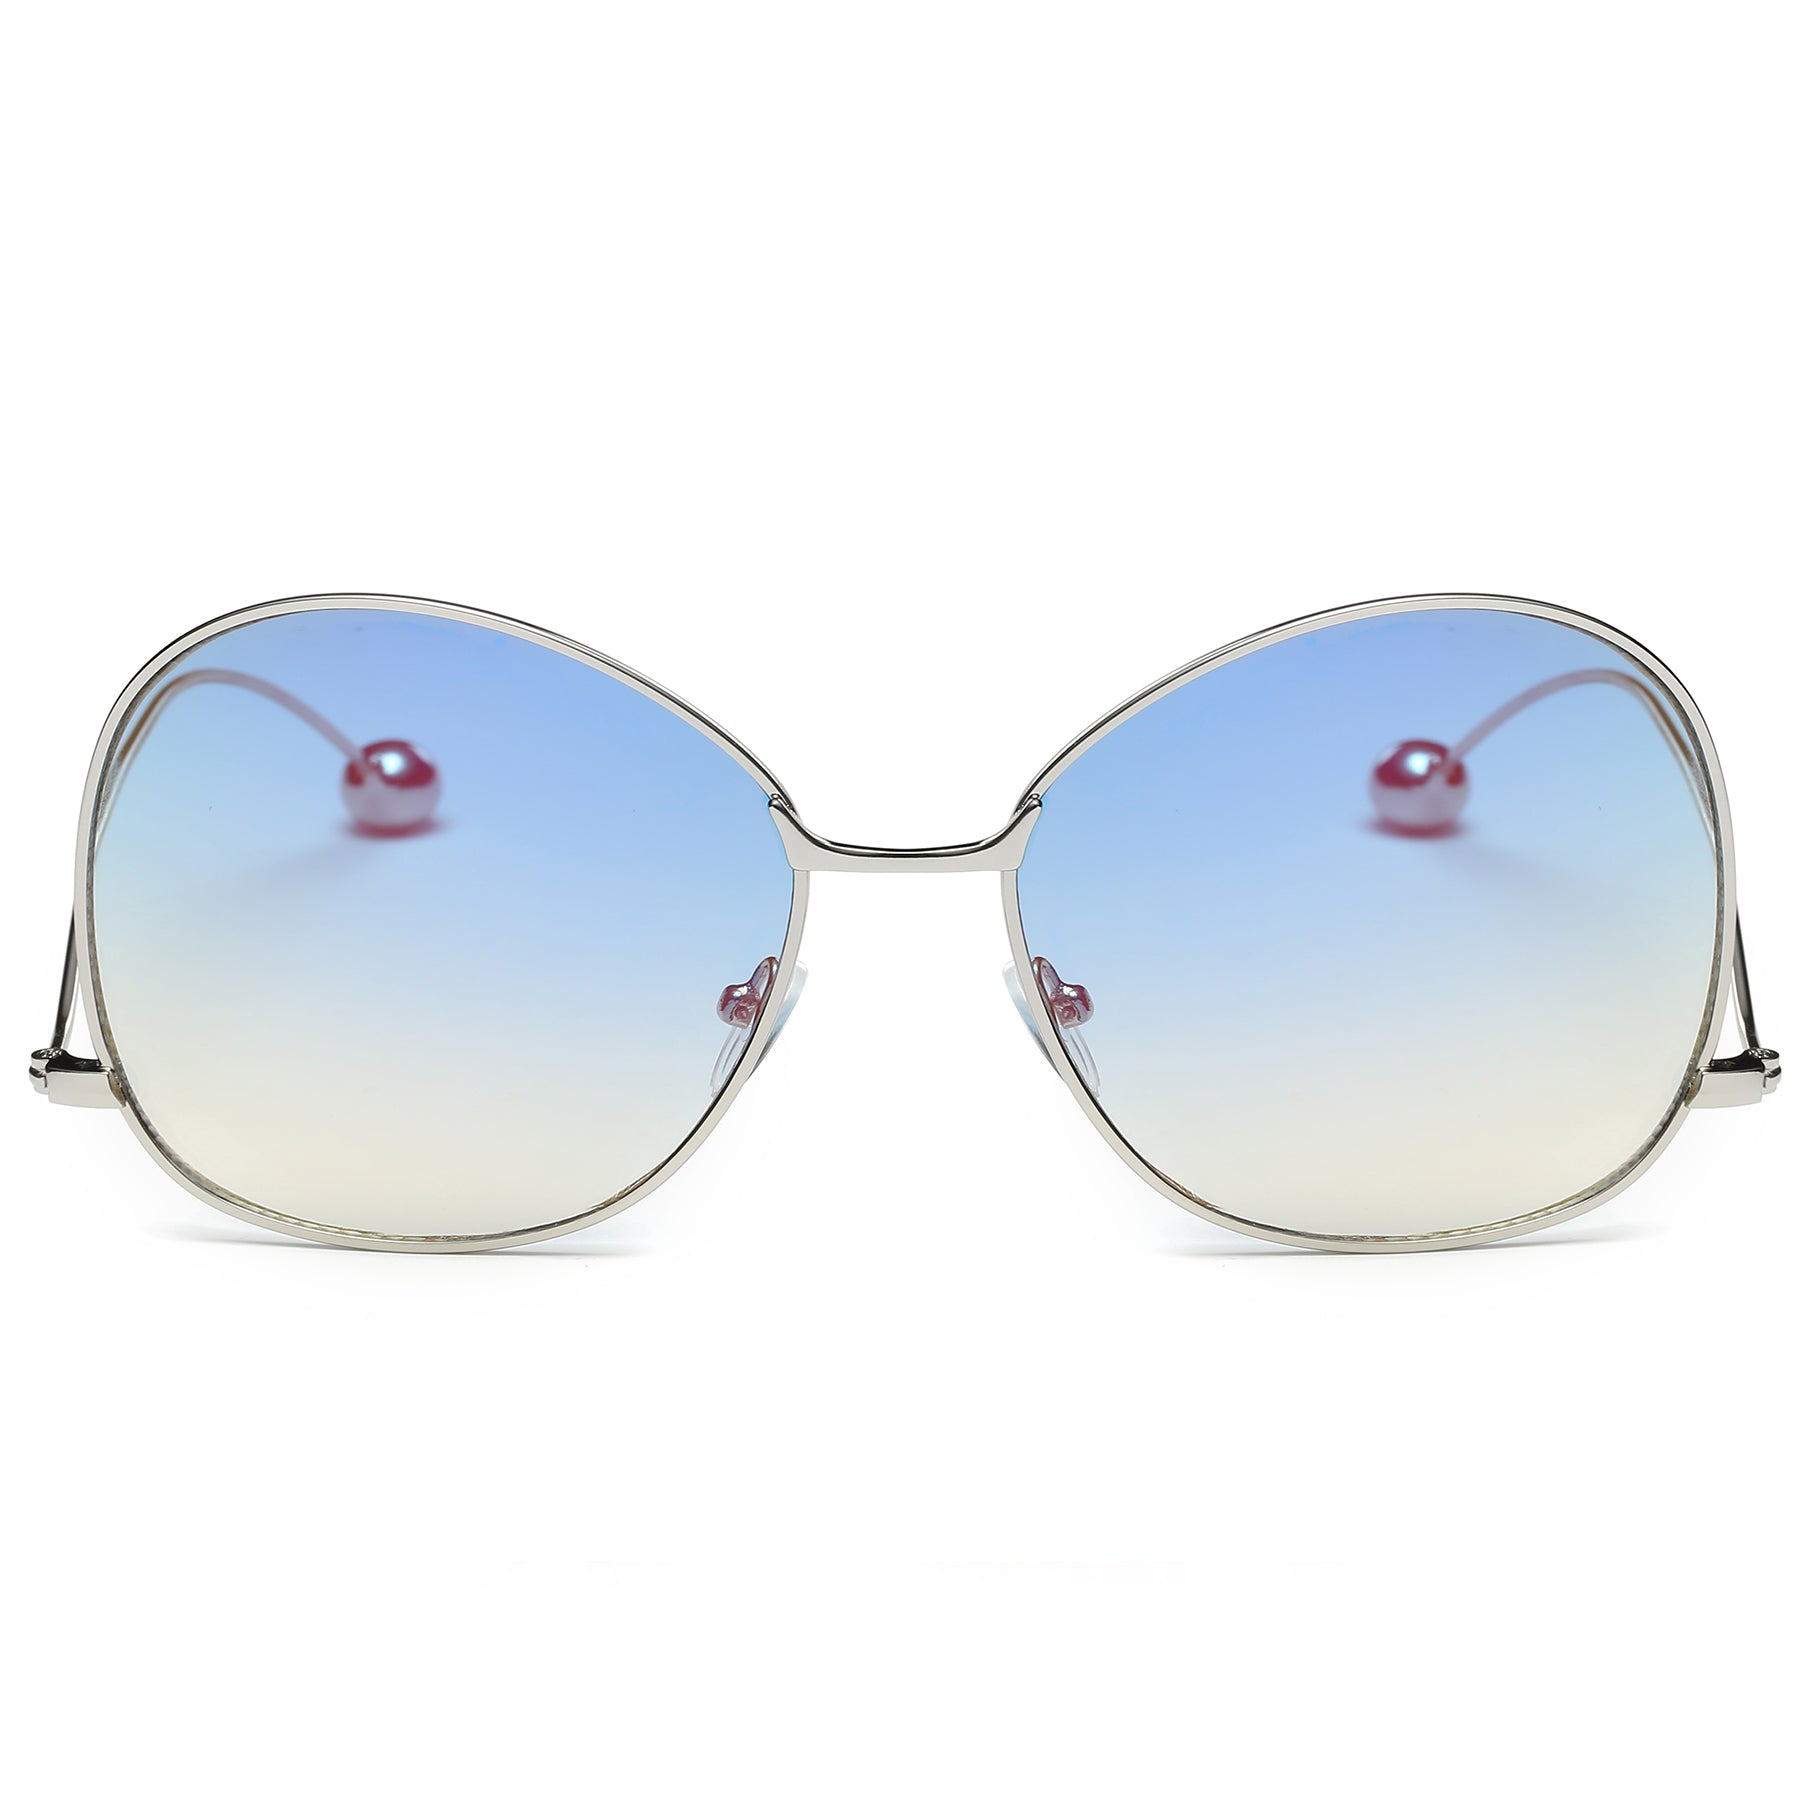 BOCA RETRO GLAM SUNGLASS IN SILVER